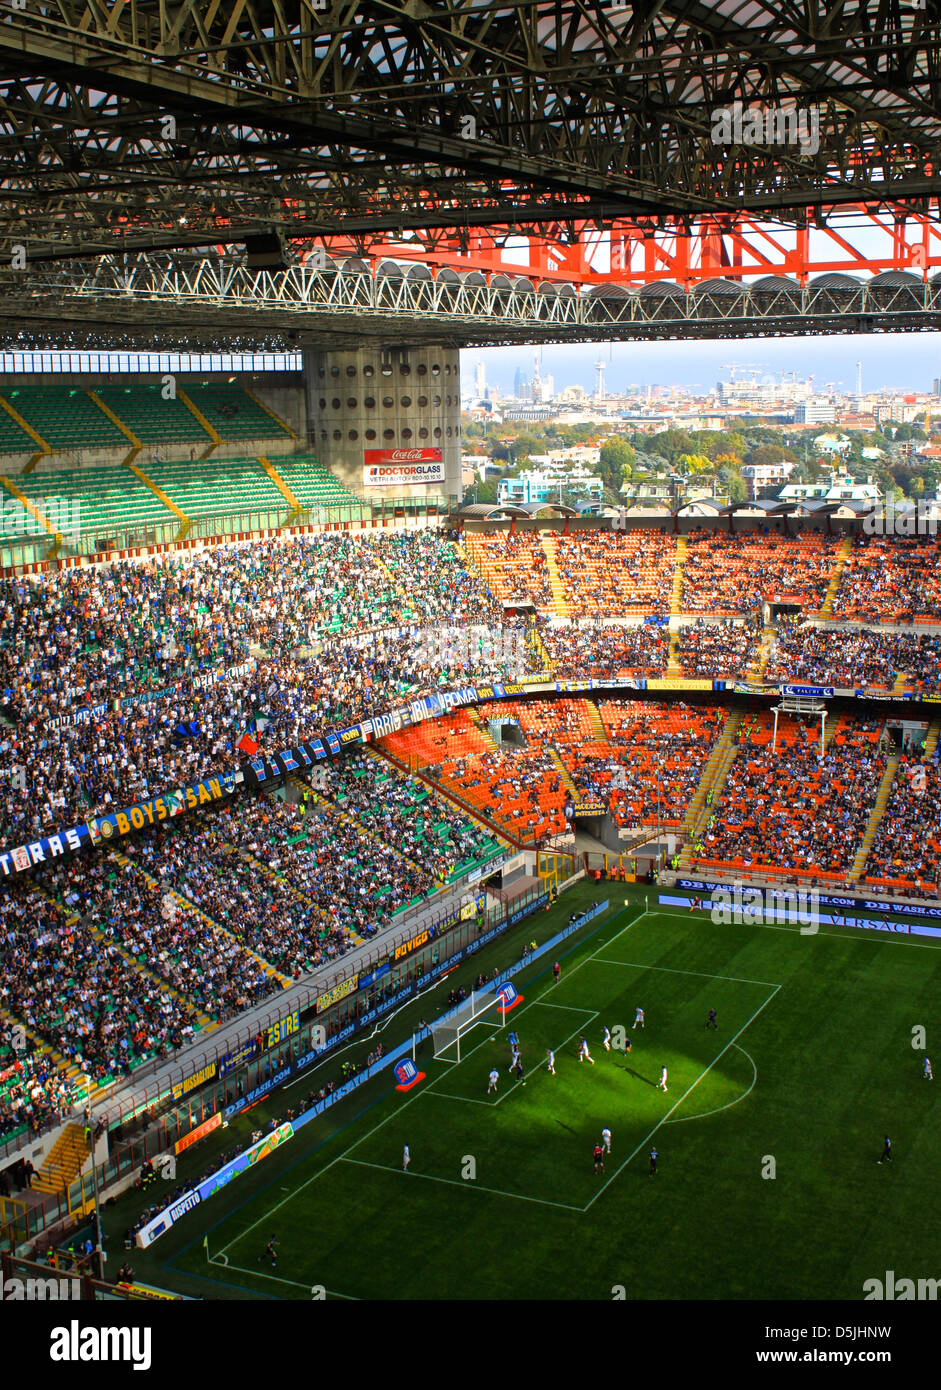 Action from the Serie A match between Inter Milan and Catania at the San Siro Stock Photo